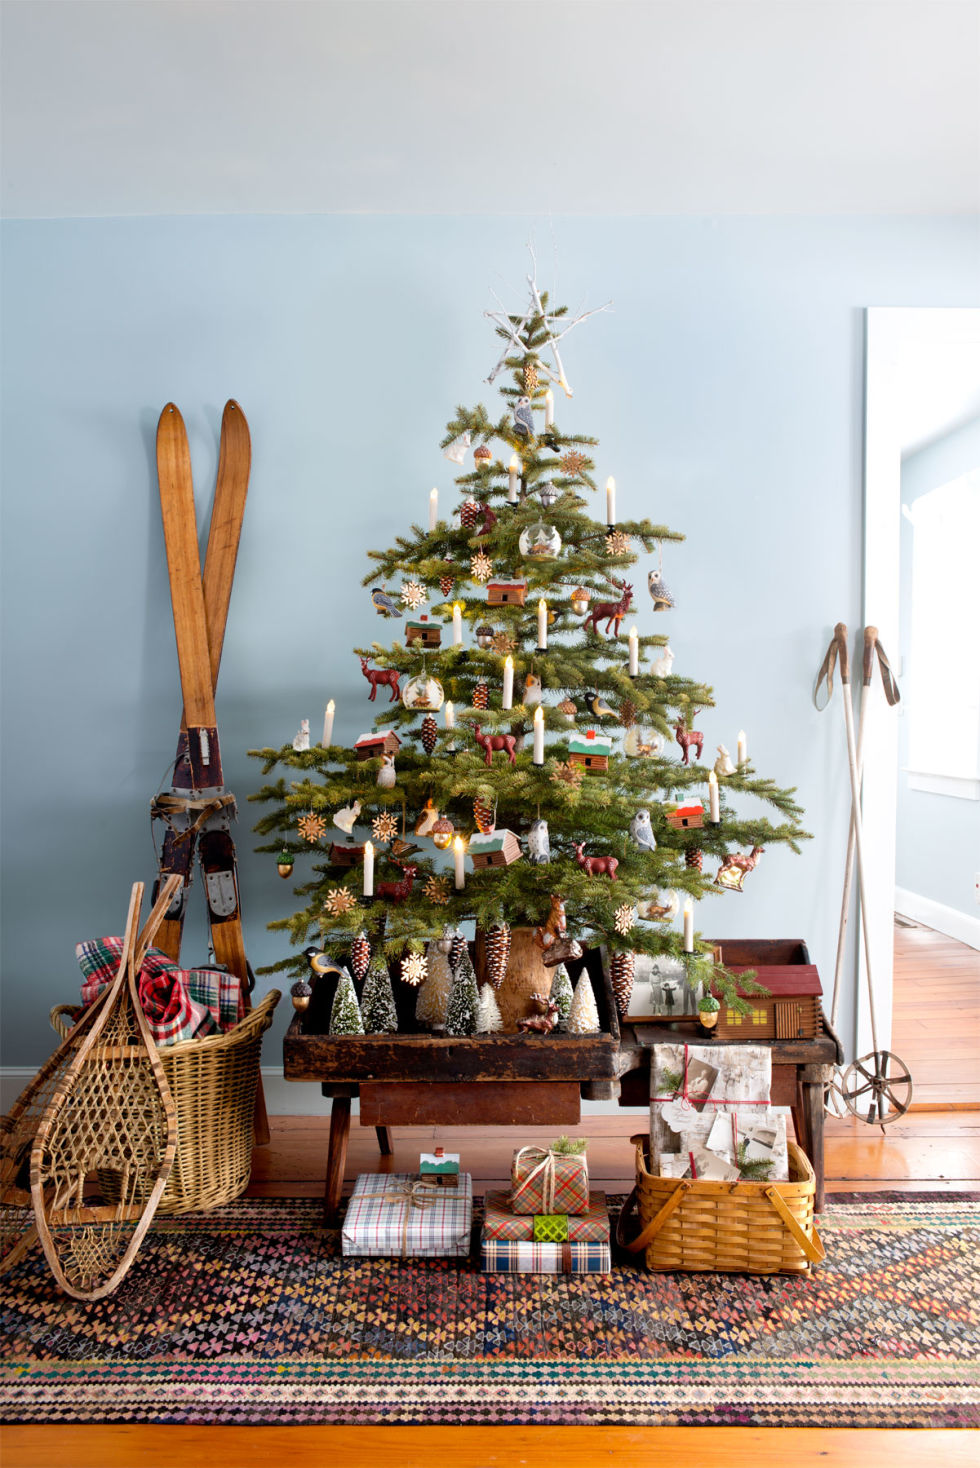 Christmas Tree Pictures 35 christmas tree decoration ideas - pictures of beautiful